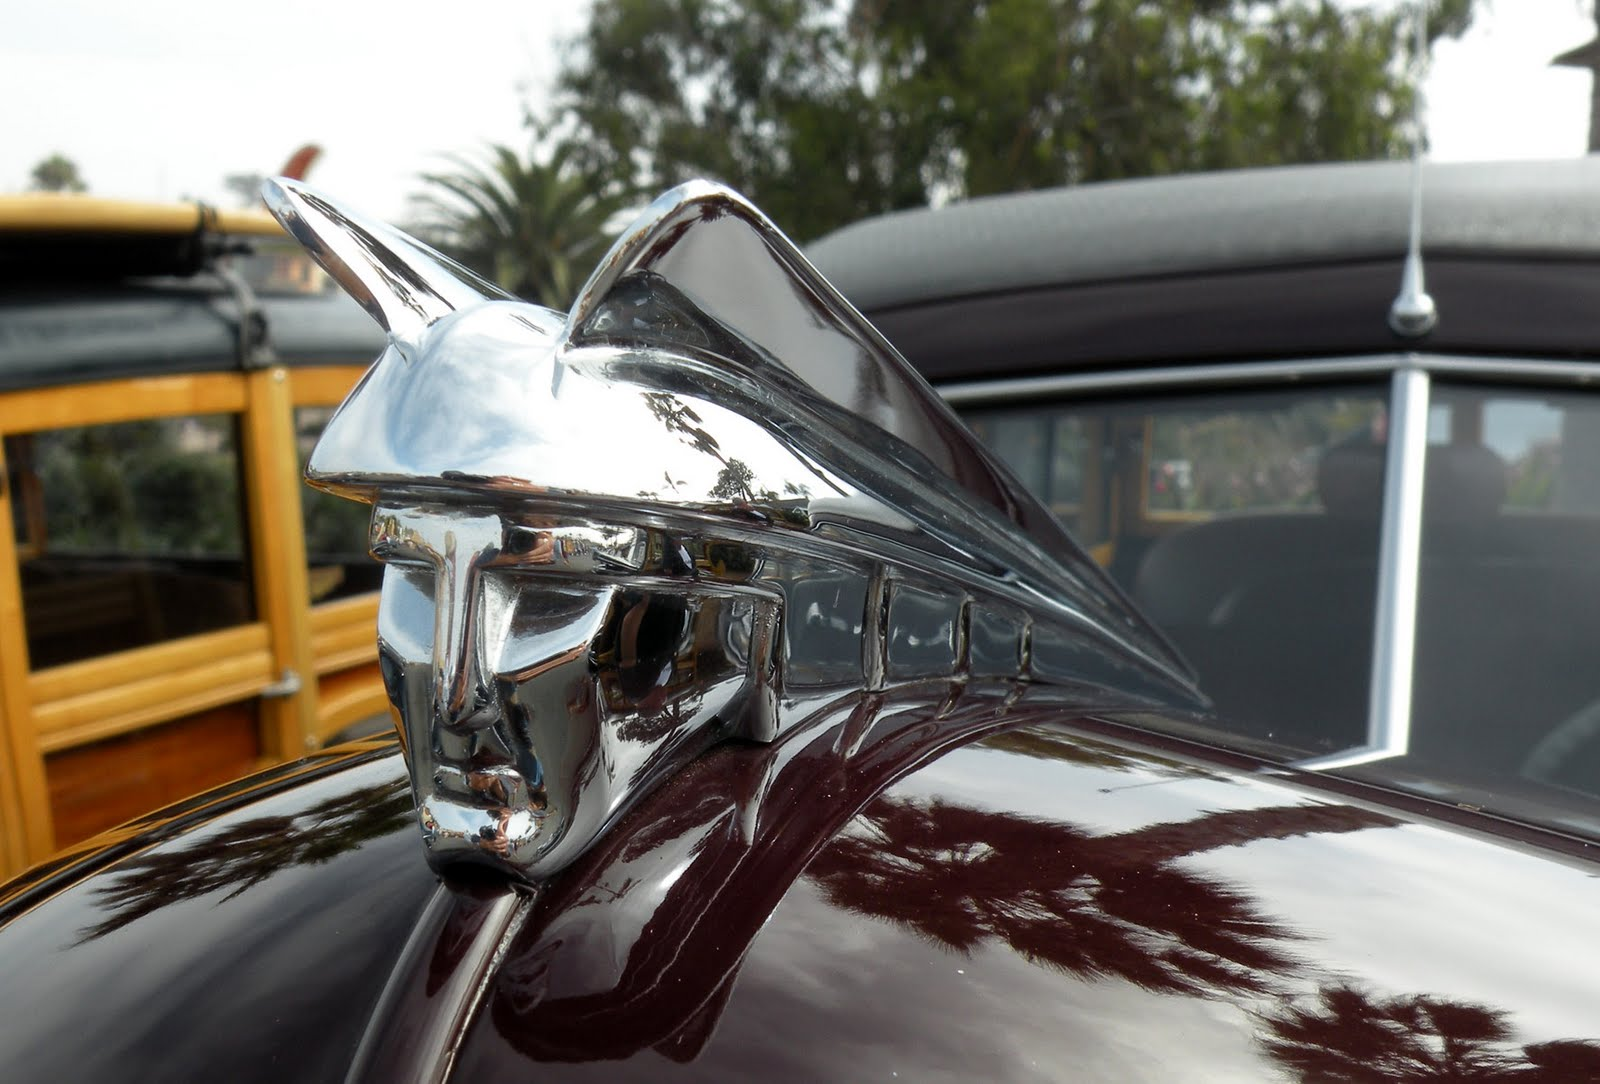 Cool hood ornaments - This Mercury Hood Ornament Is The First Time I Ve Noticed The Head Of The God Mercury As A Hood Ornament Cool Looks Like A Transformer Though